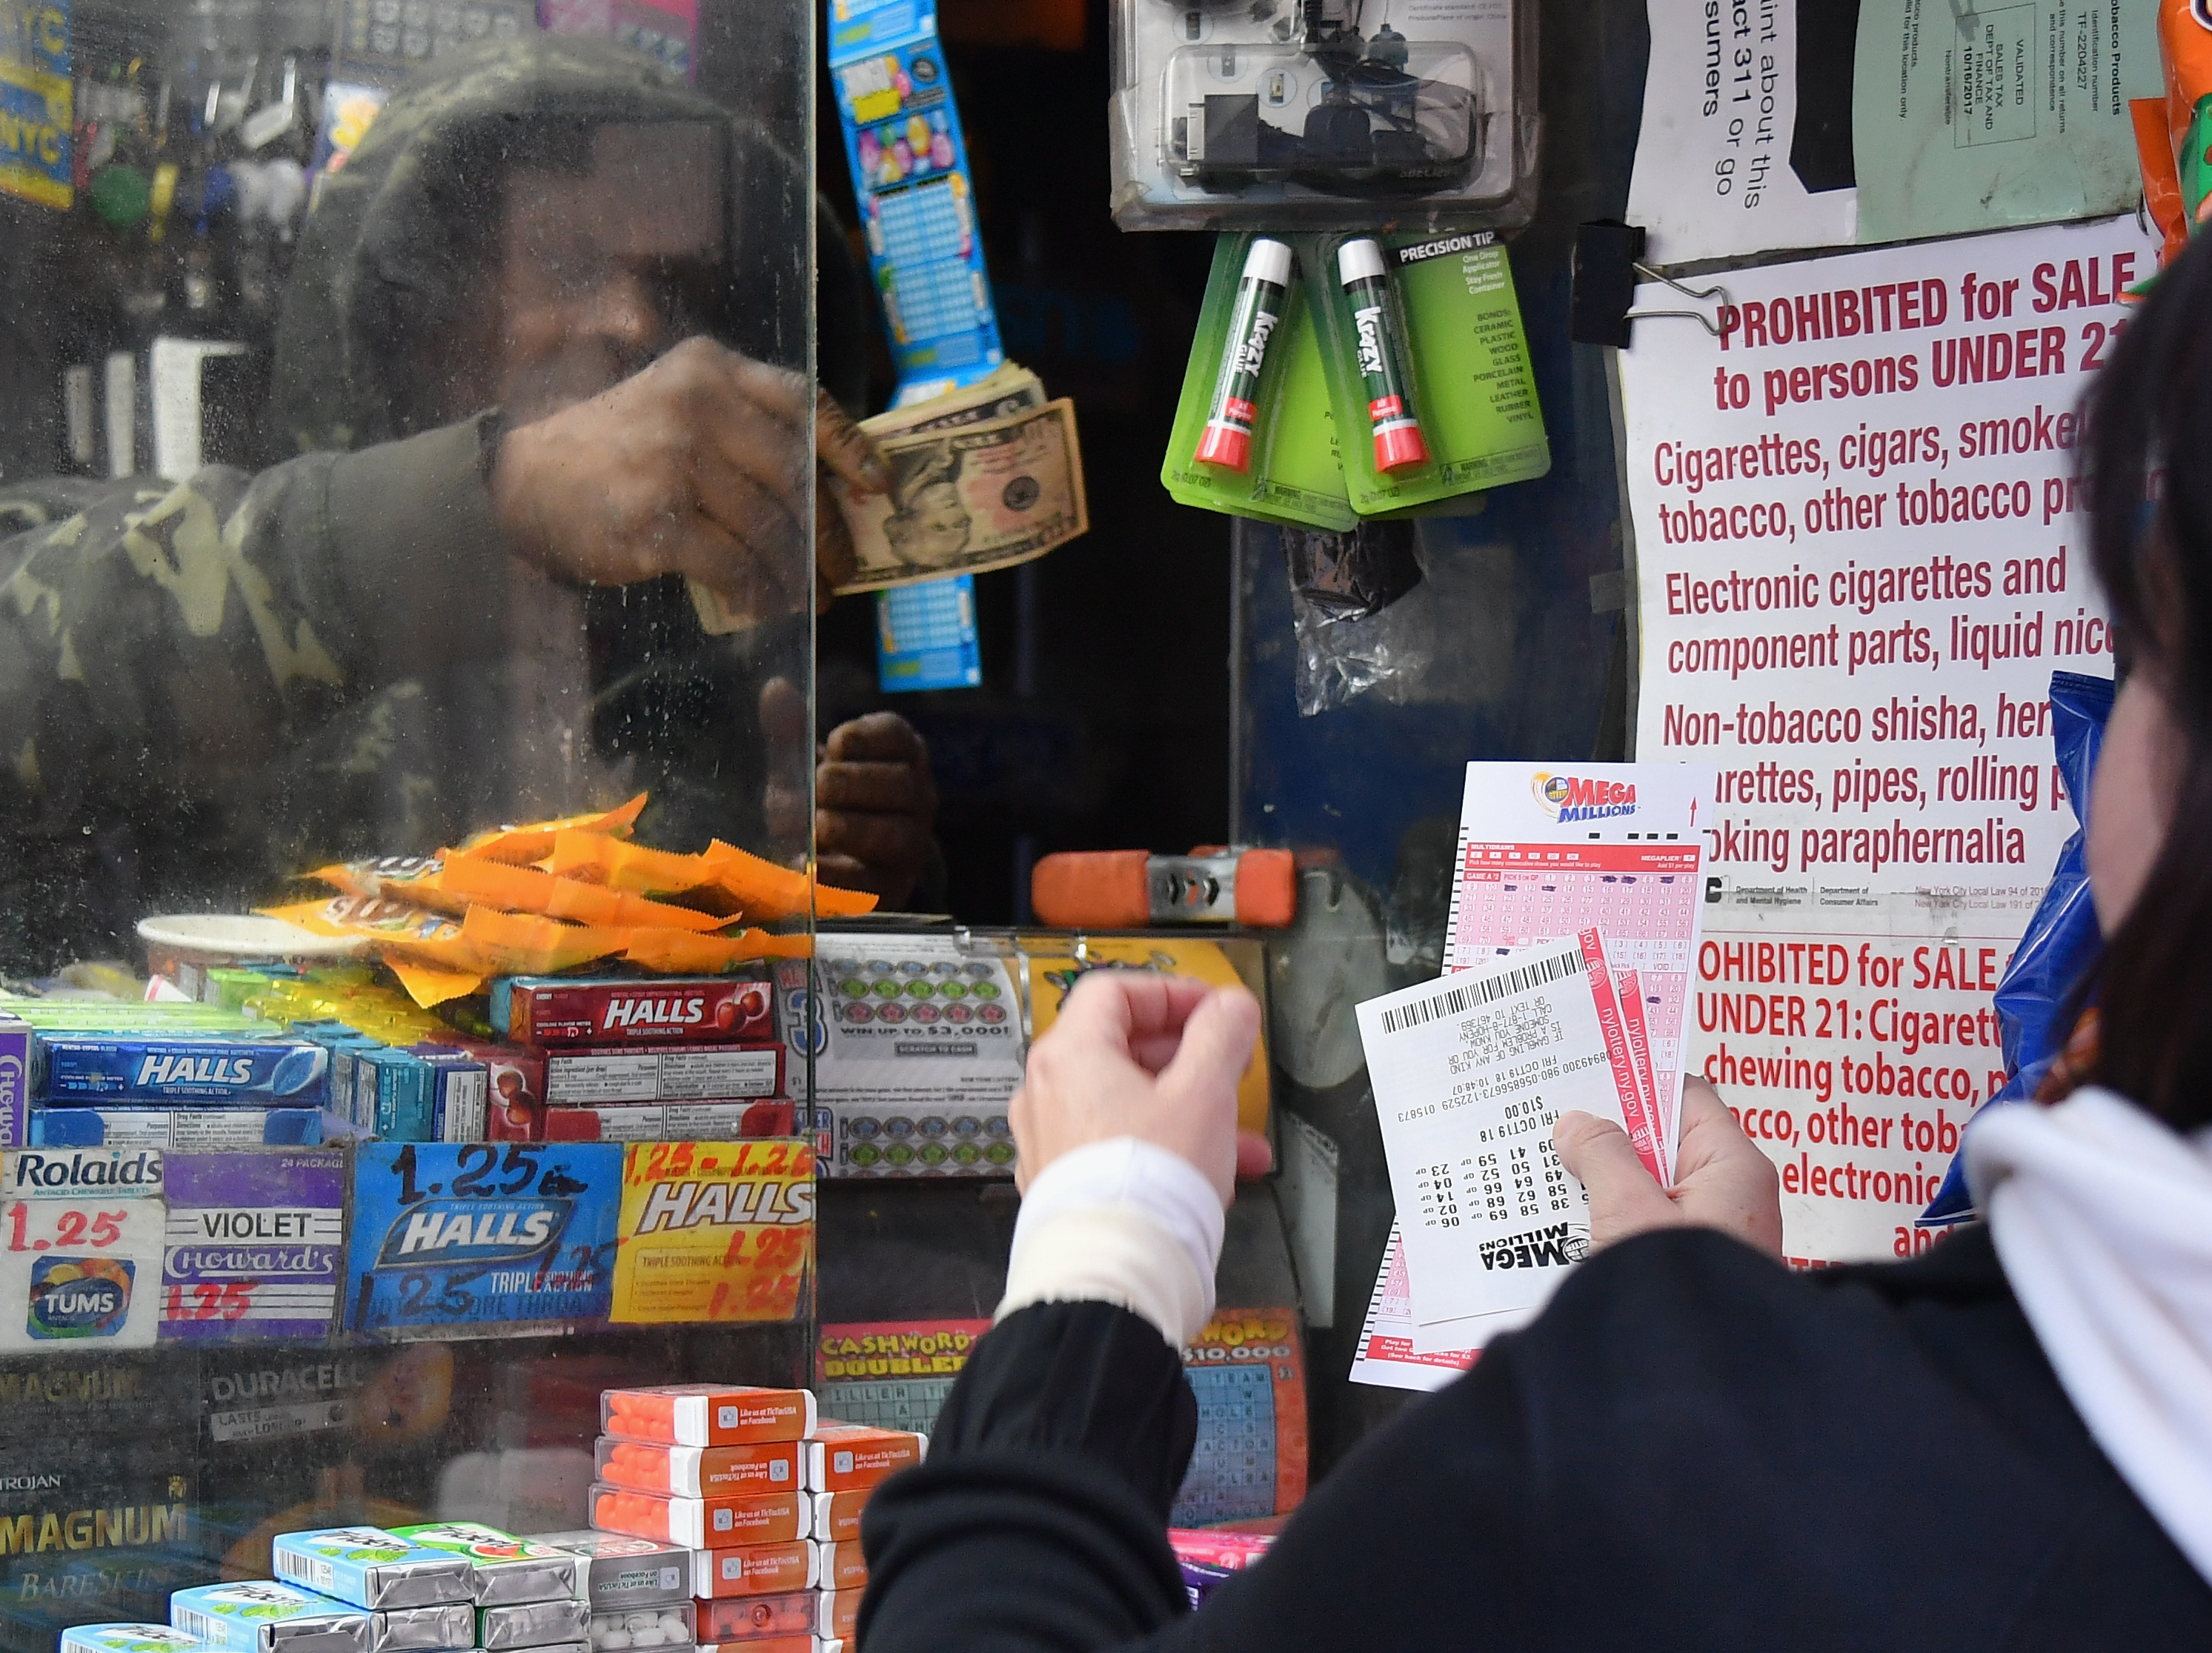 A woman purchases Mega Millions lottery tickets in New York City Friday, Oct. 19, 2018. The Mega Millions jackpot climbed from $970 million to $1 billion. (Angela Weiss/AFP/Getty Images)